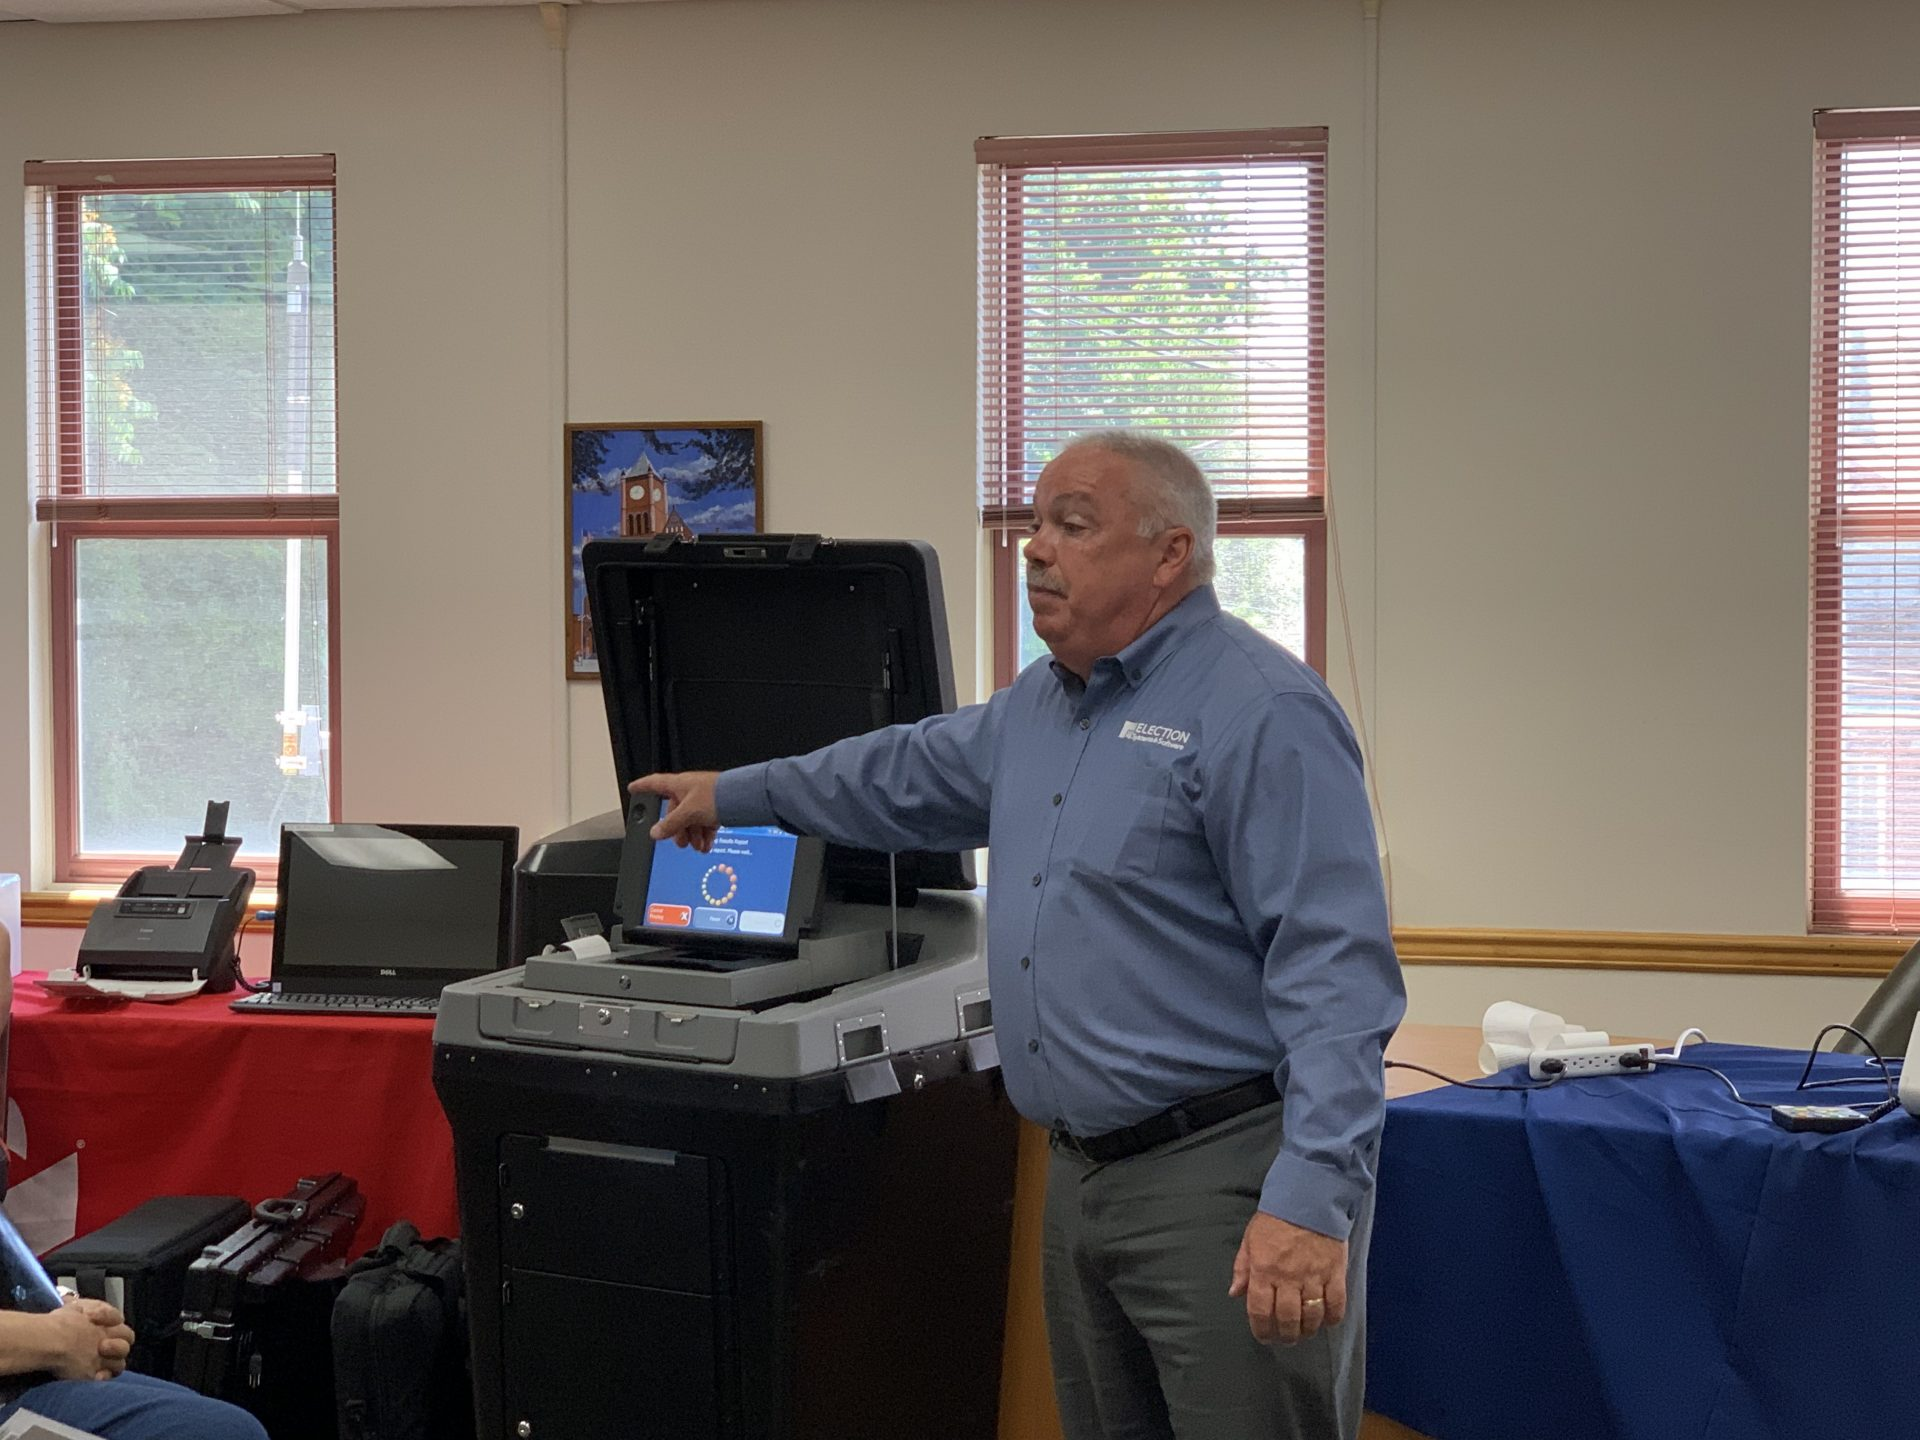 Election Systems & Software Regional Sales Manager Joseph Passarella makes his pitch in Columbia County June 26, 2019. (Emily Previti/PA Post)